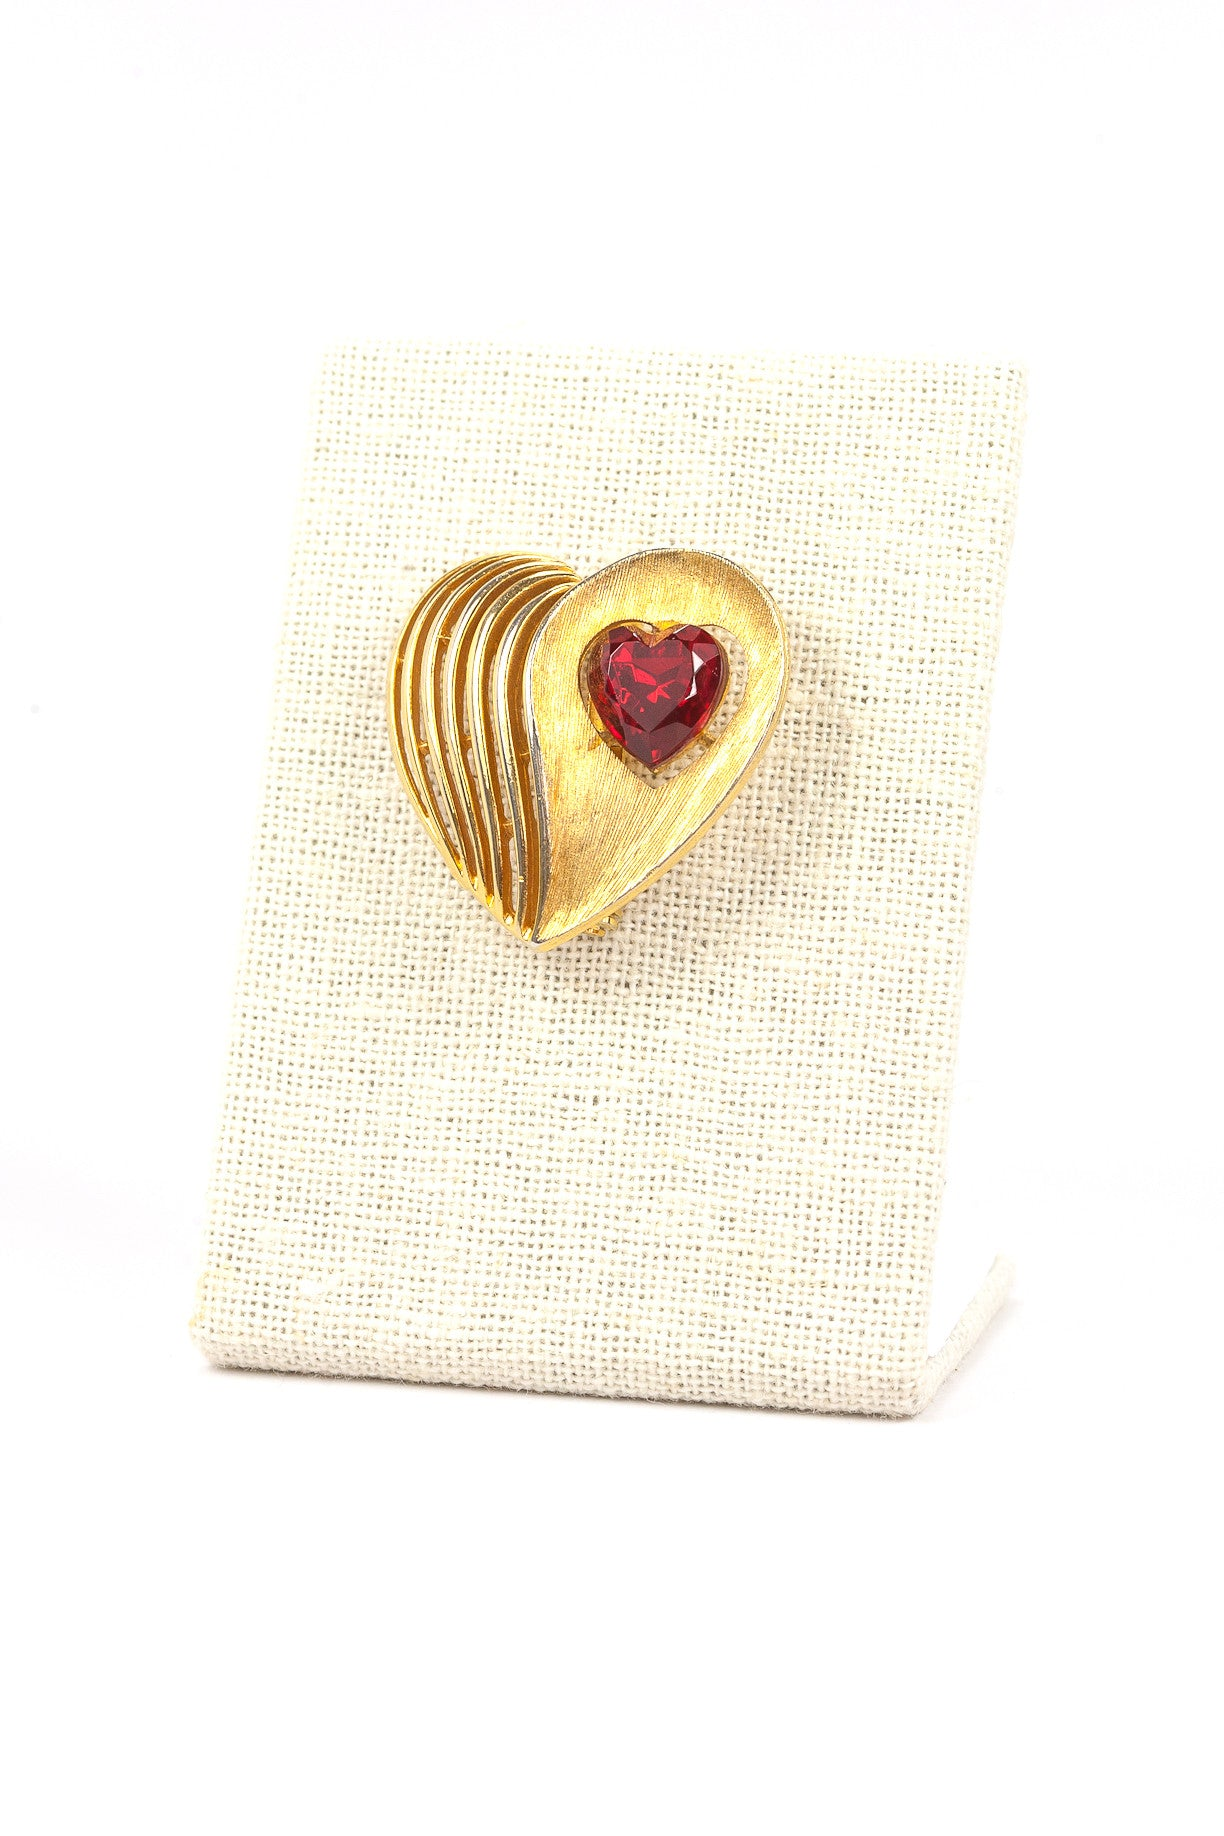 60's__JJ__Red Rhinestone Heart Brooch